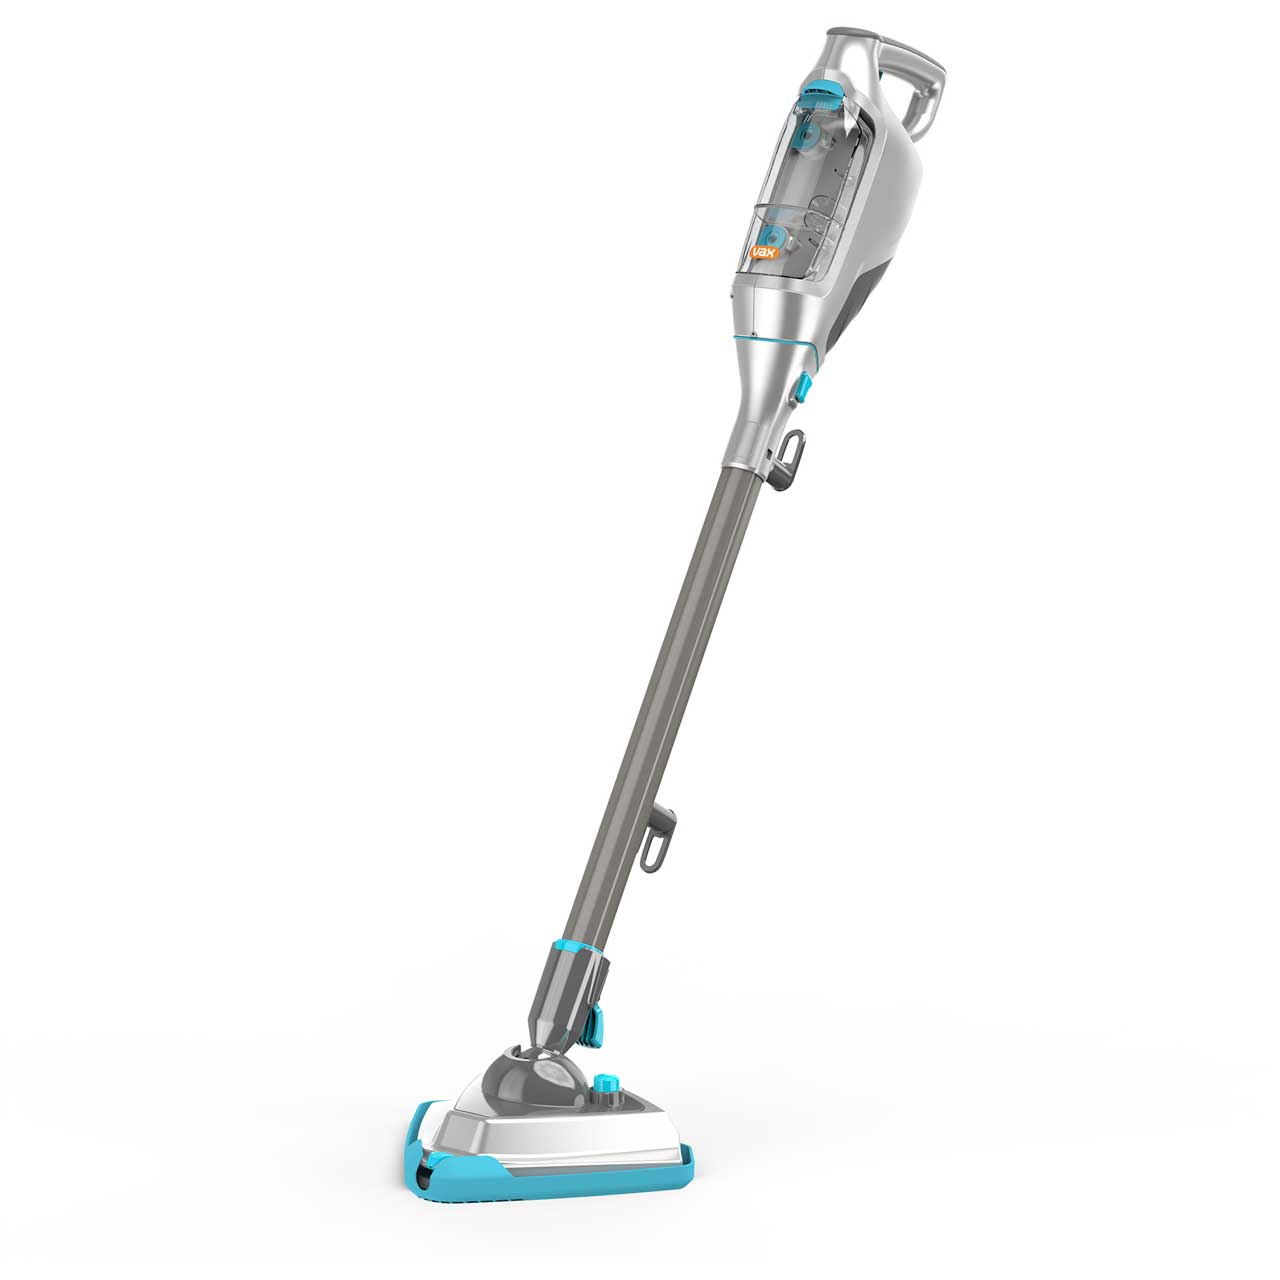 Vax S84-W7-P Steam Cleaner download instruction manual pdf